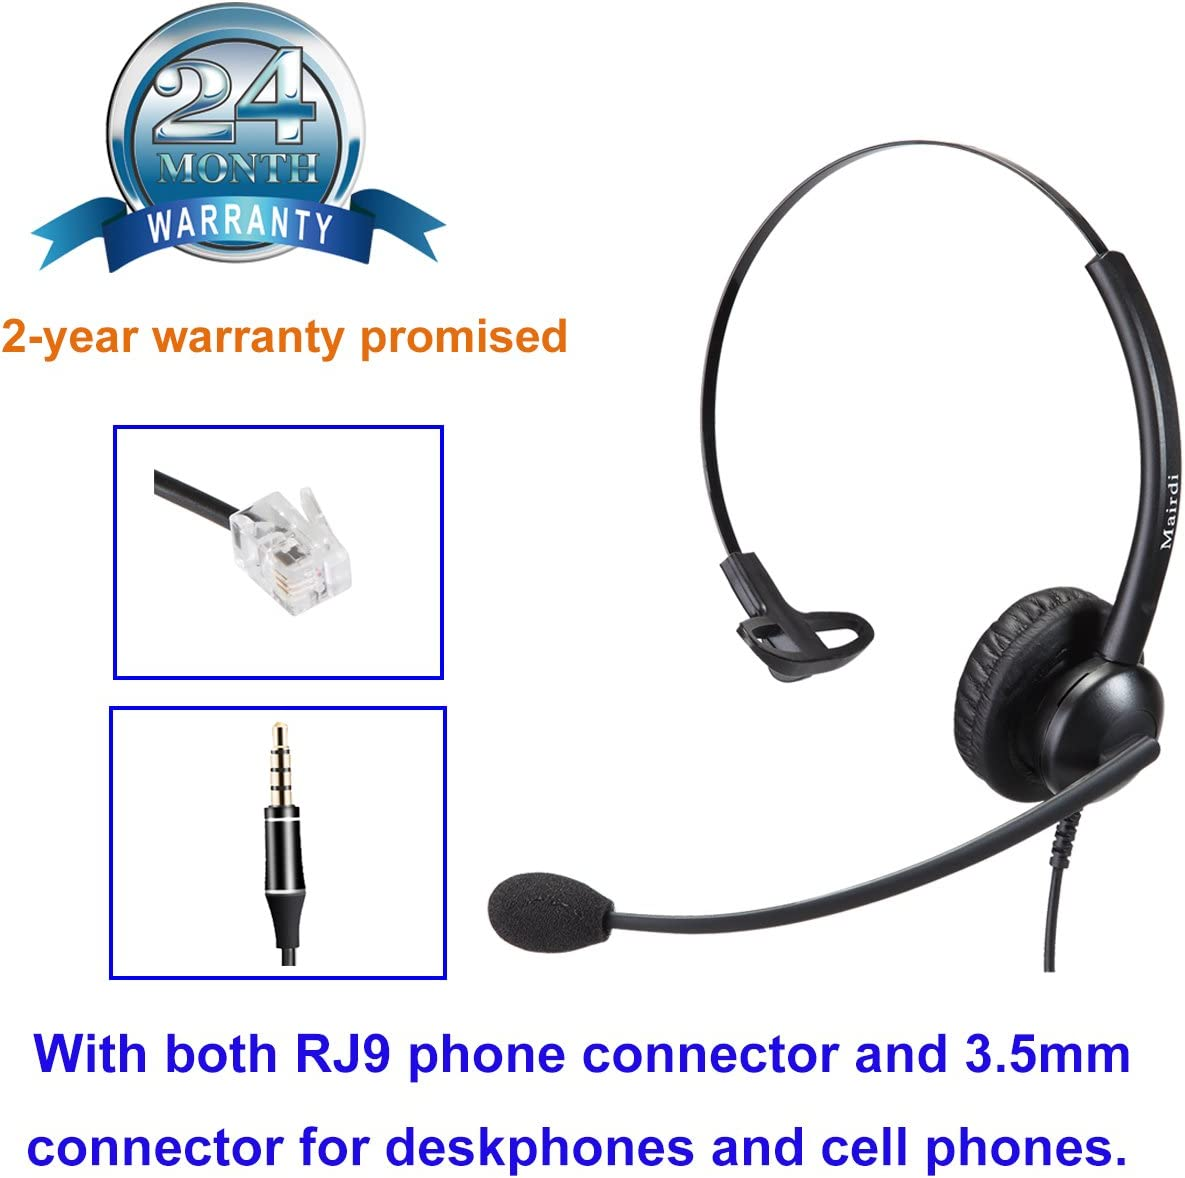 Cisco Headset RJ9 Phone Headset for Cisco IP Phone with Noise Cancelling Microphone Plus 3.5mm Connector